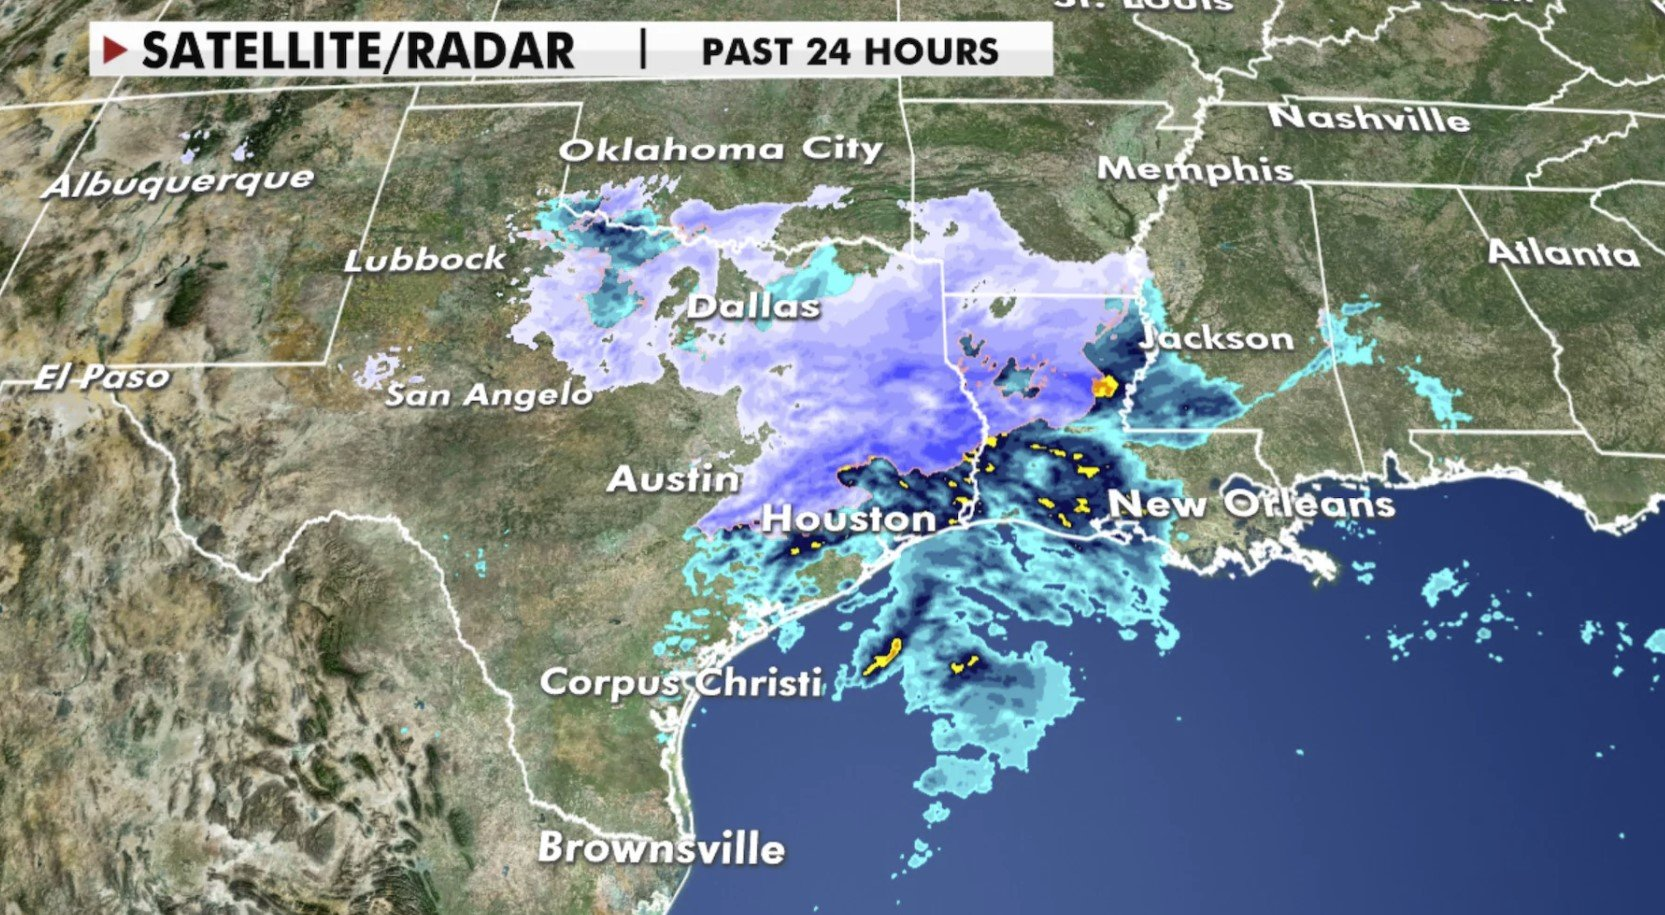 Extreme winter storm Lana drops snow in Texas and Mississippi Valley - 150,000 homes and businesses in the dark - Strange Sounds